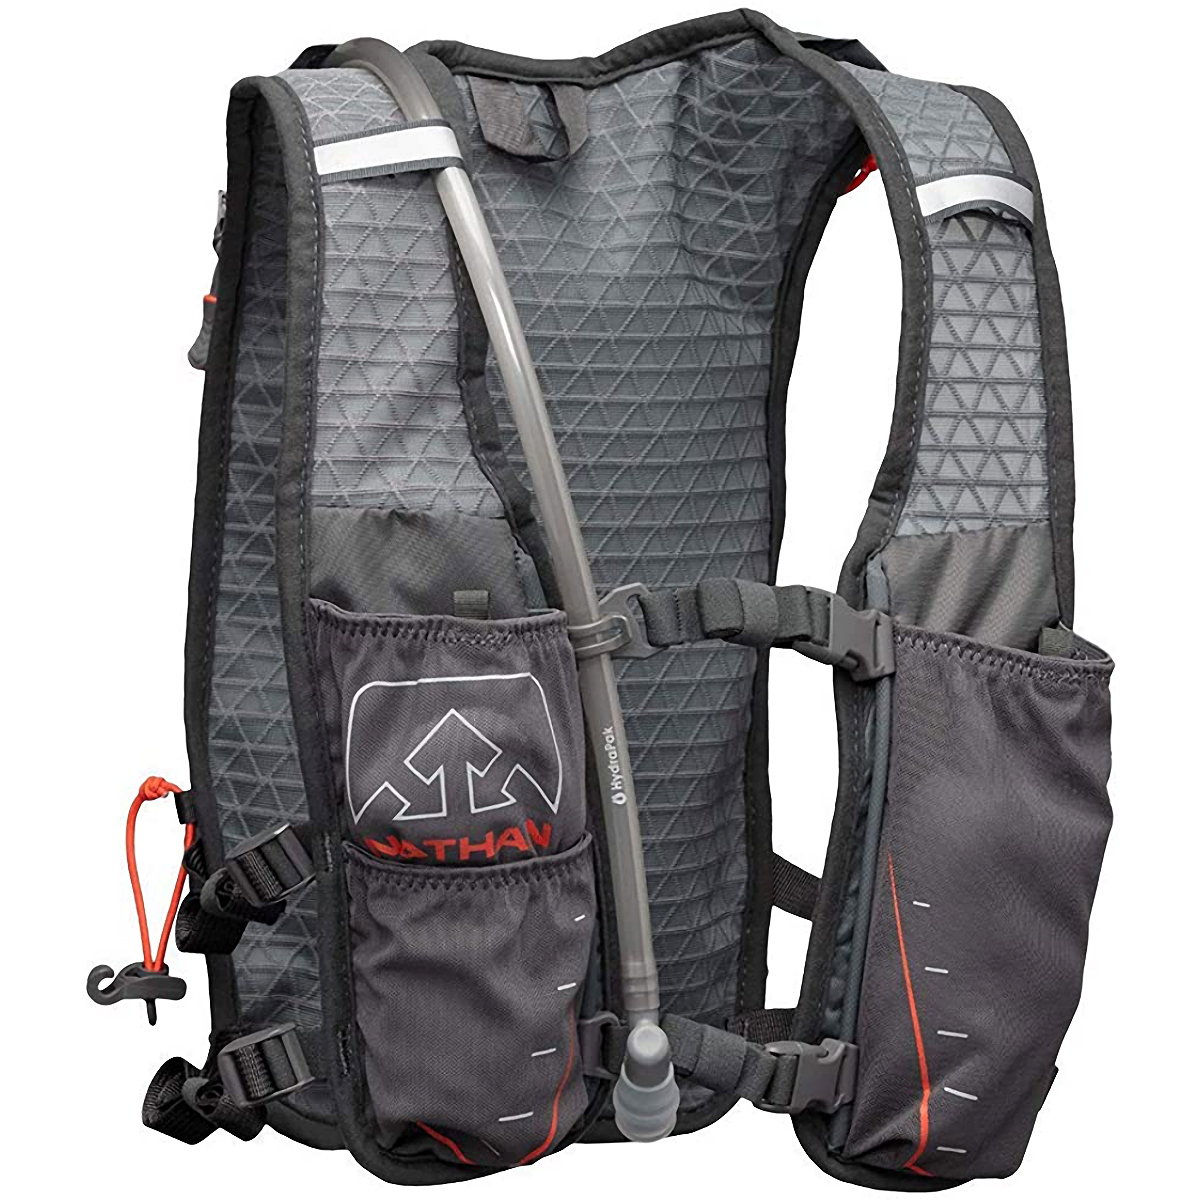 Nathan Trailmix 7 Liter Race Pack - Color: Charcoal/Steel Grey/Cherry Tomato - Size: One Size, Charcoal/Steel Grey/Cherry Tomato, large, image 1